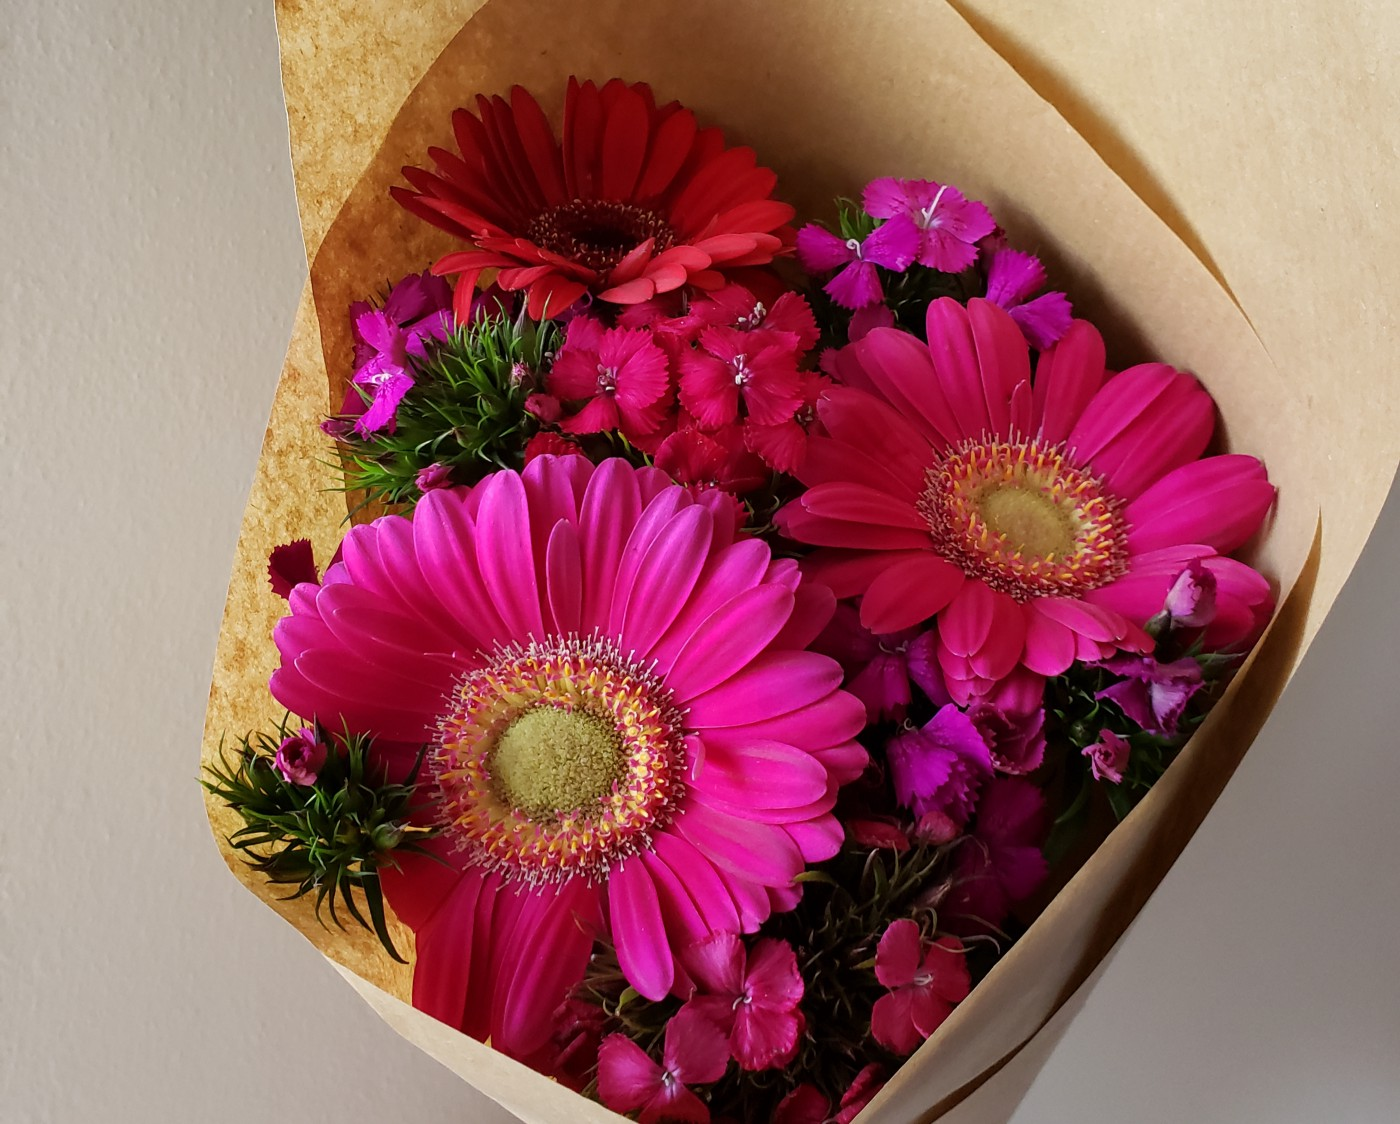 Bouquet of pink flowers.